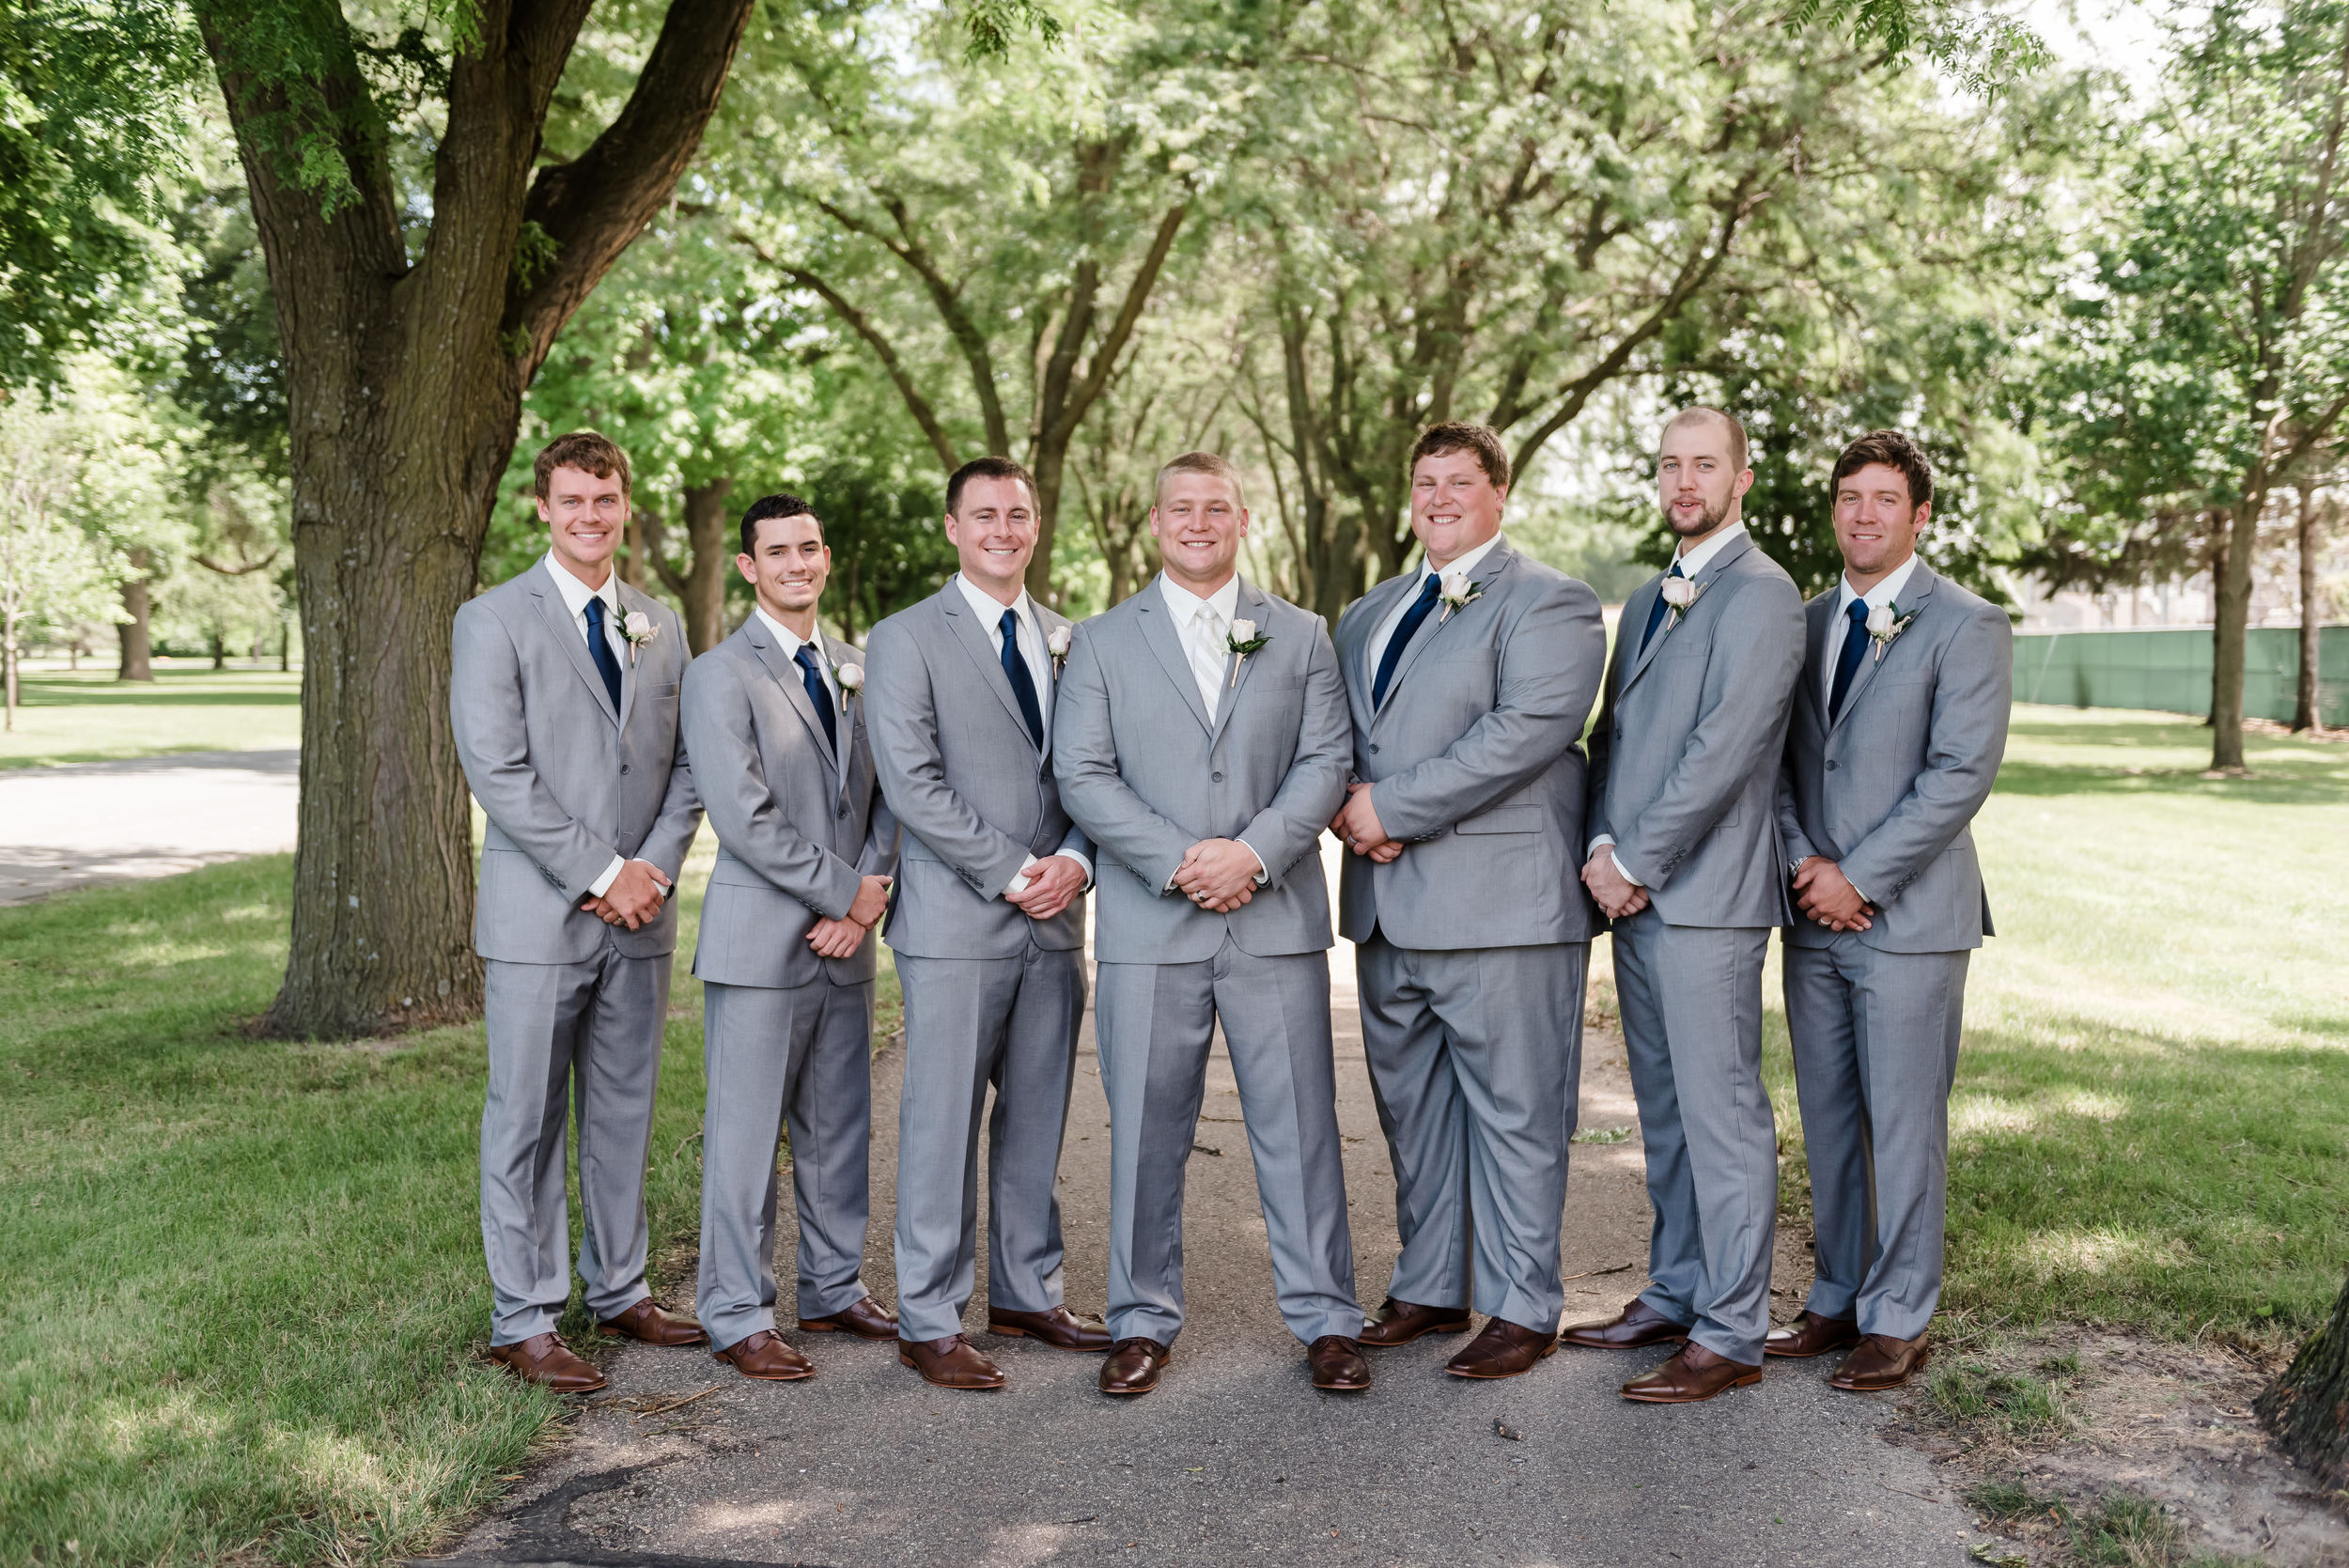 Layce and Brandon - Wedding - Bridal Party and Family - Outdoor Portraits-61.jpg